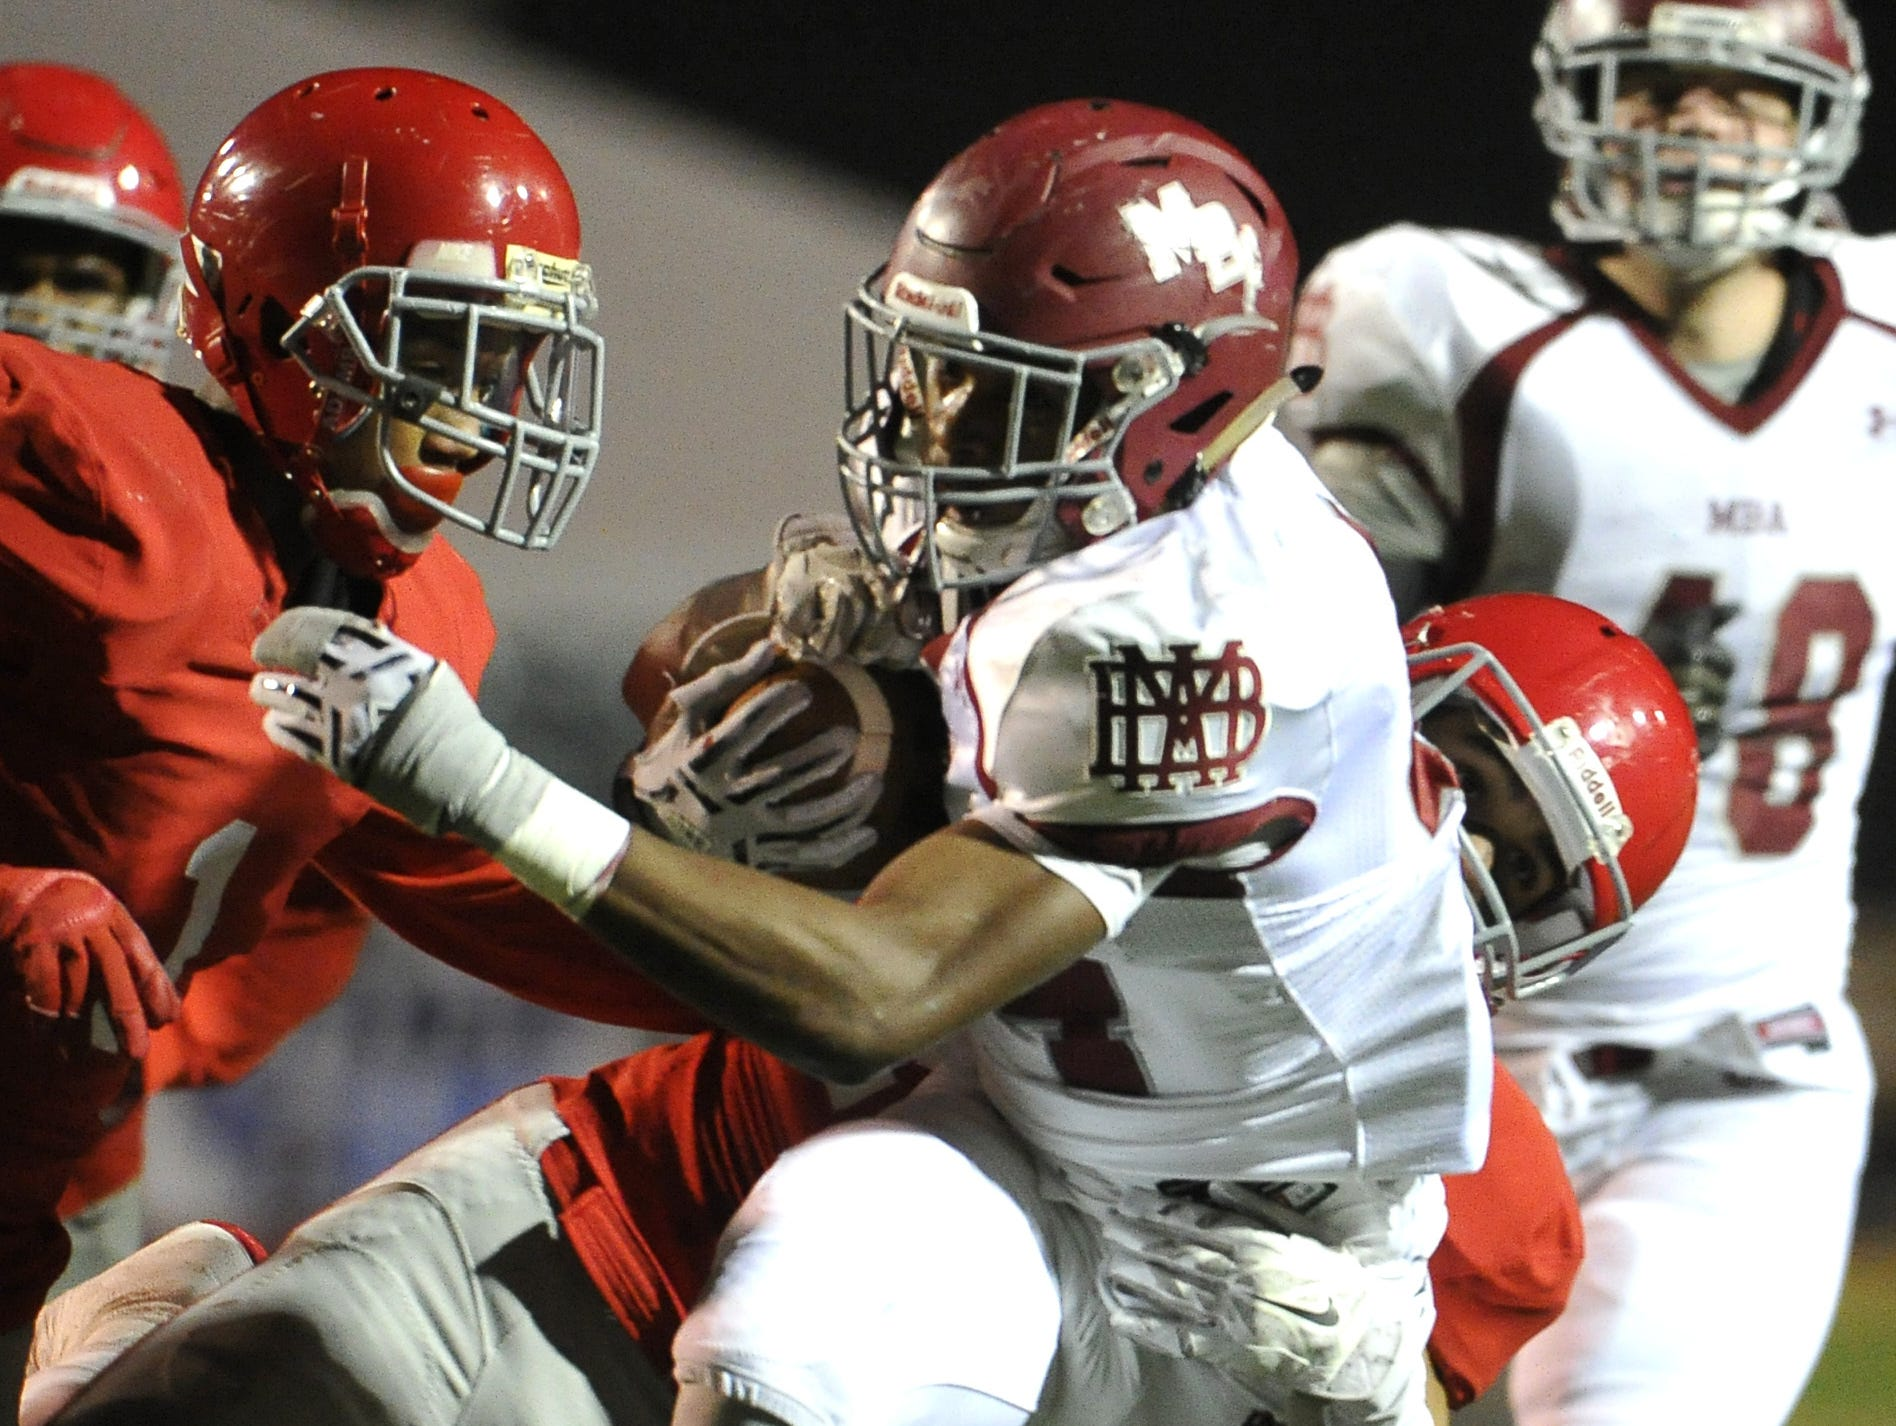 MBA running back Ty Chandler (44) is No. 2 on the Dandy Dozen.